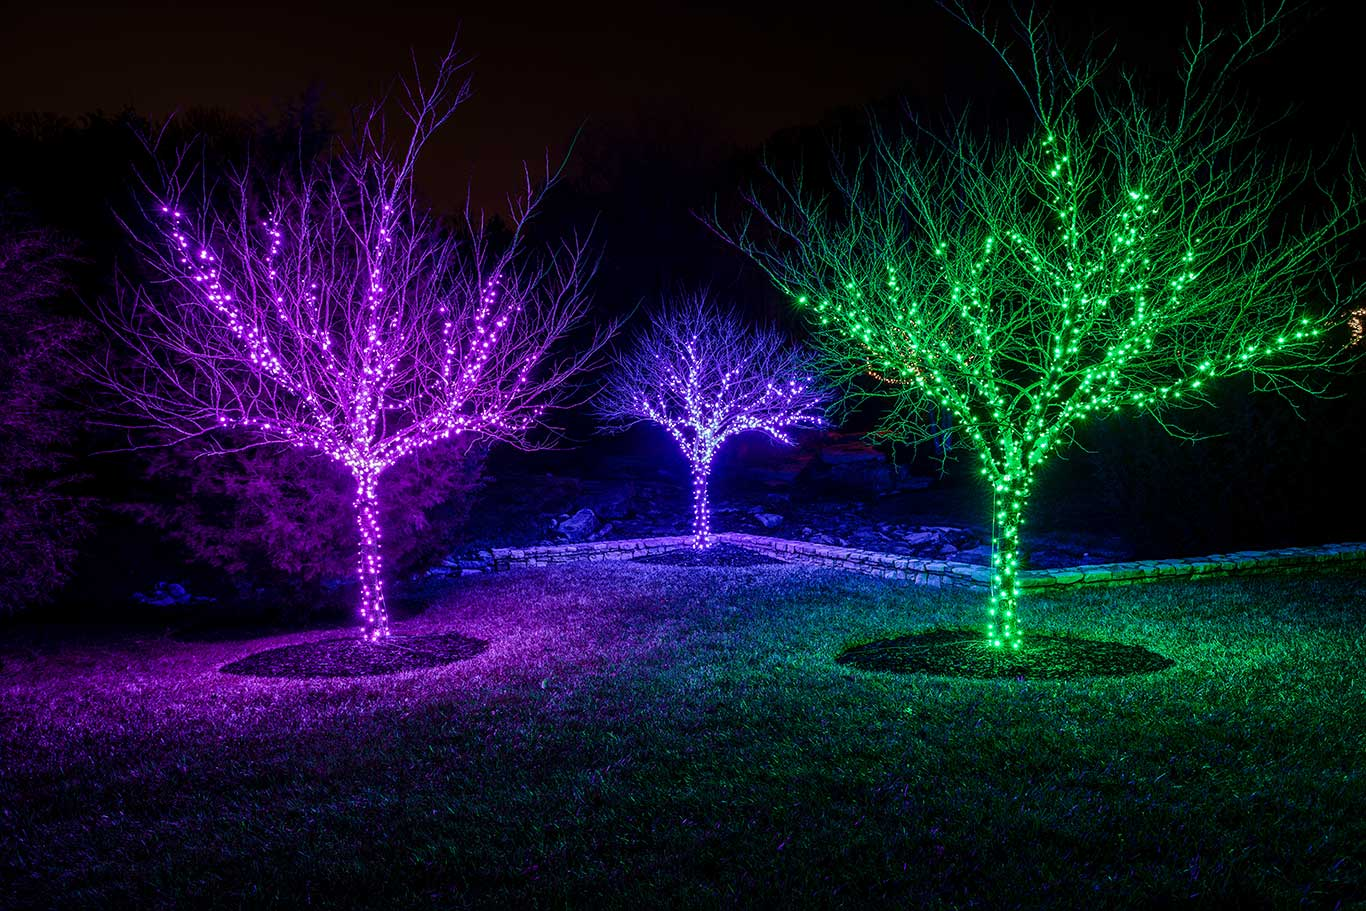 trees wrapped in colorful christmas lights